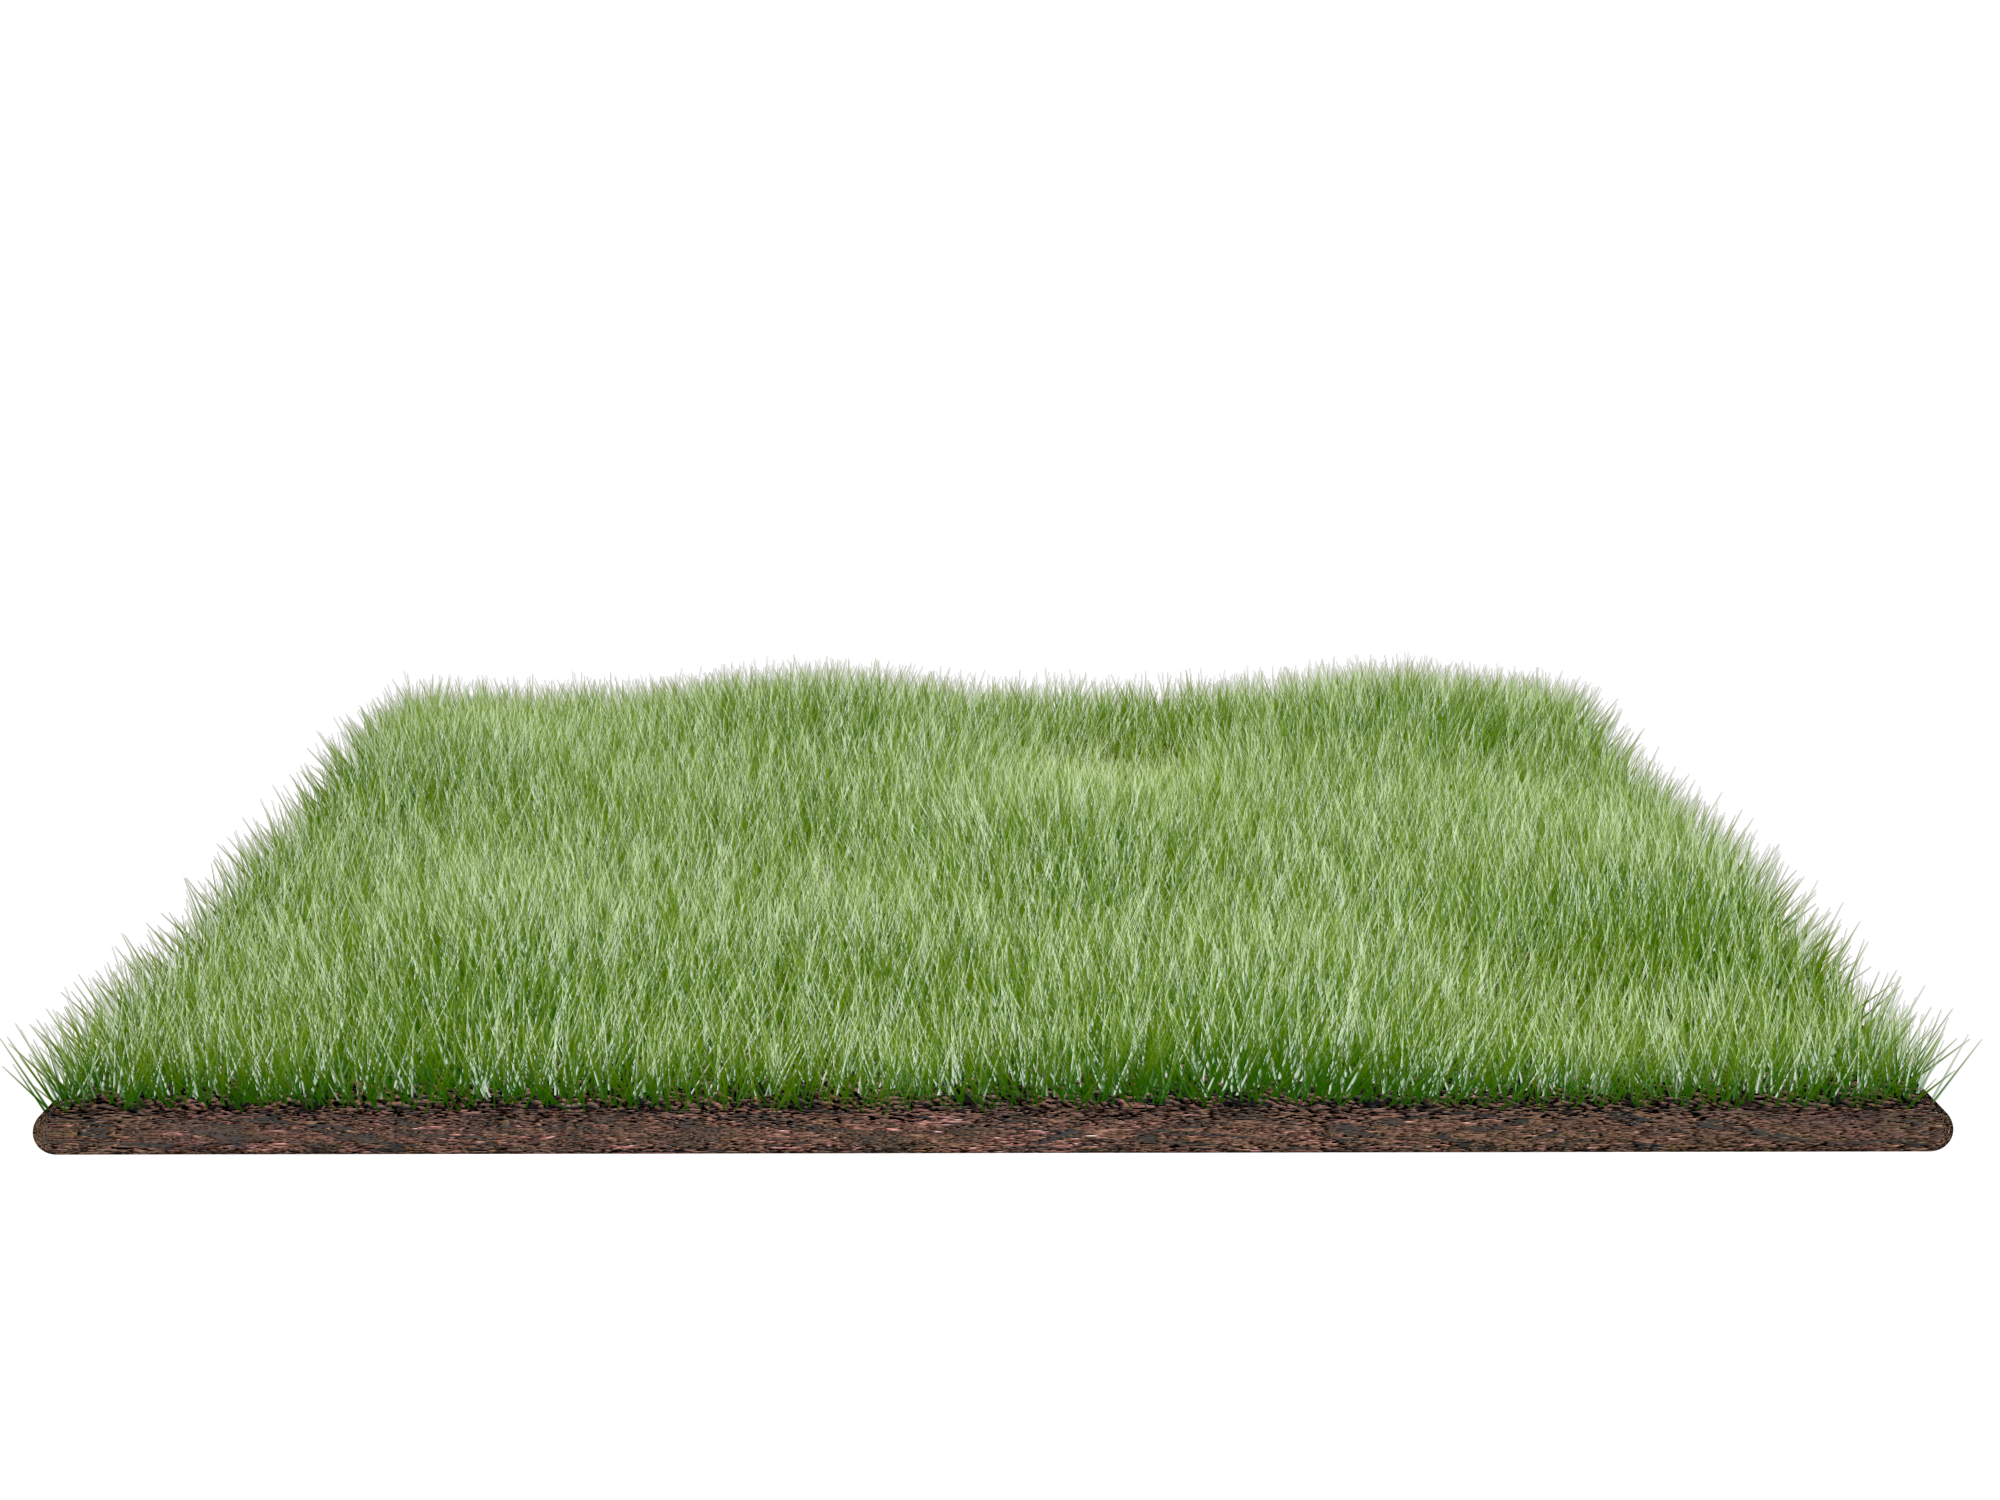 Grass Field Png image #4767